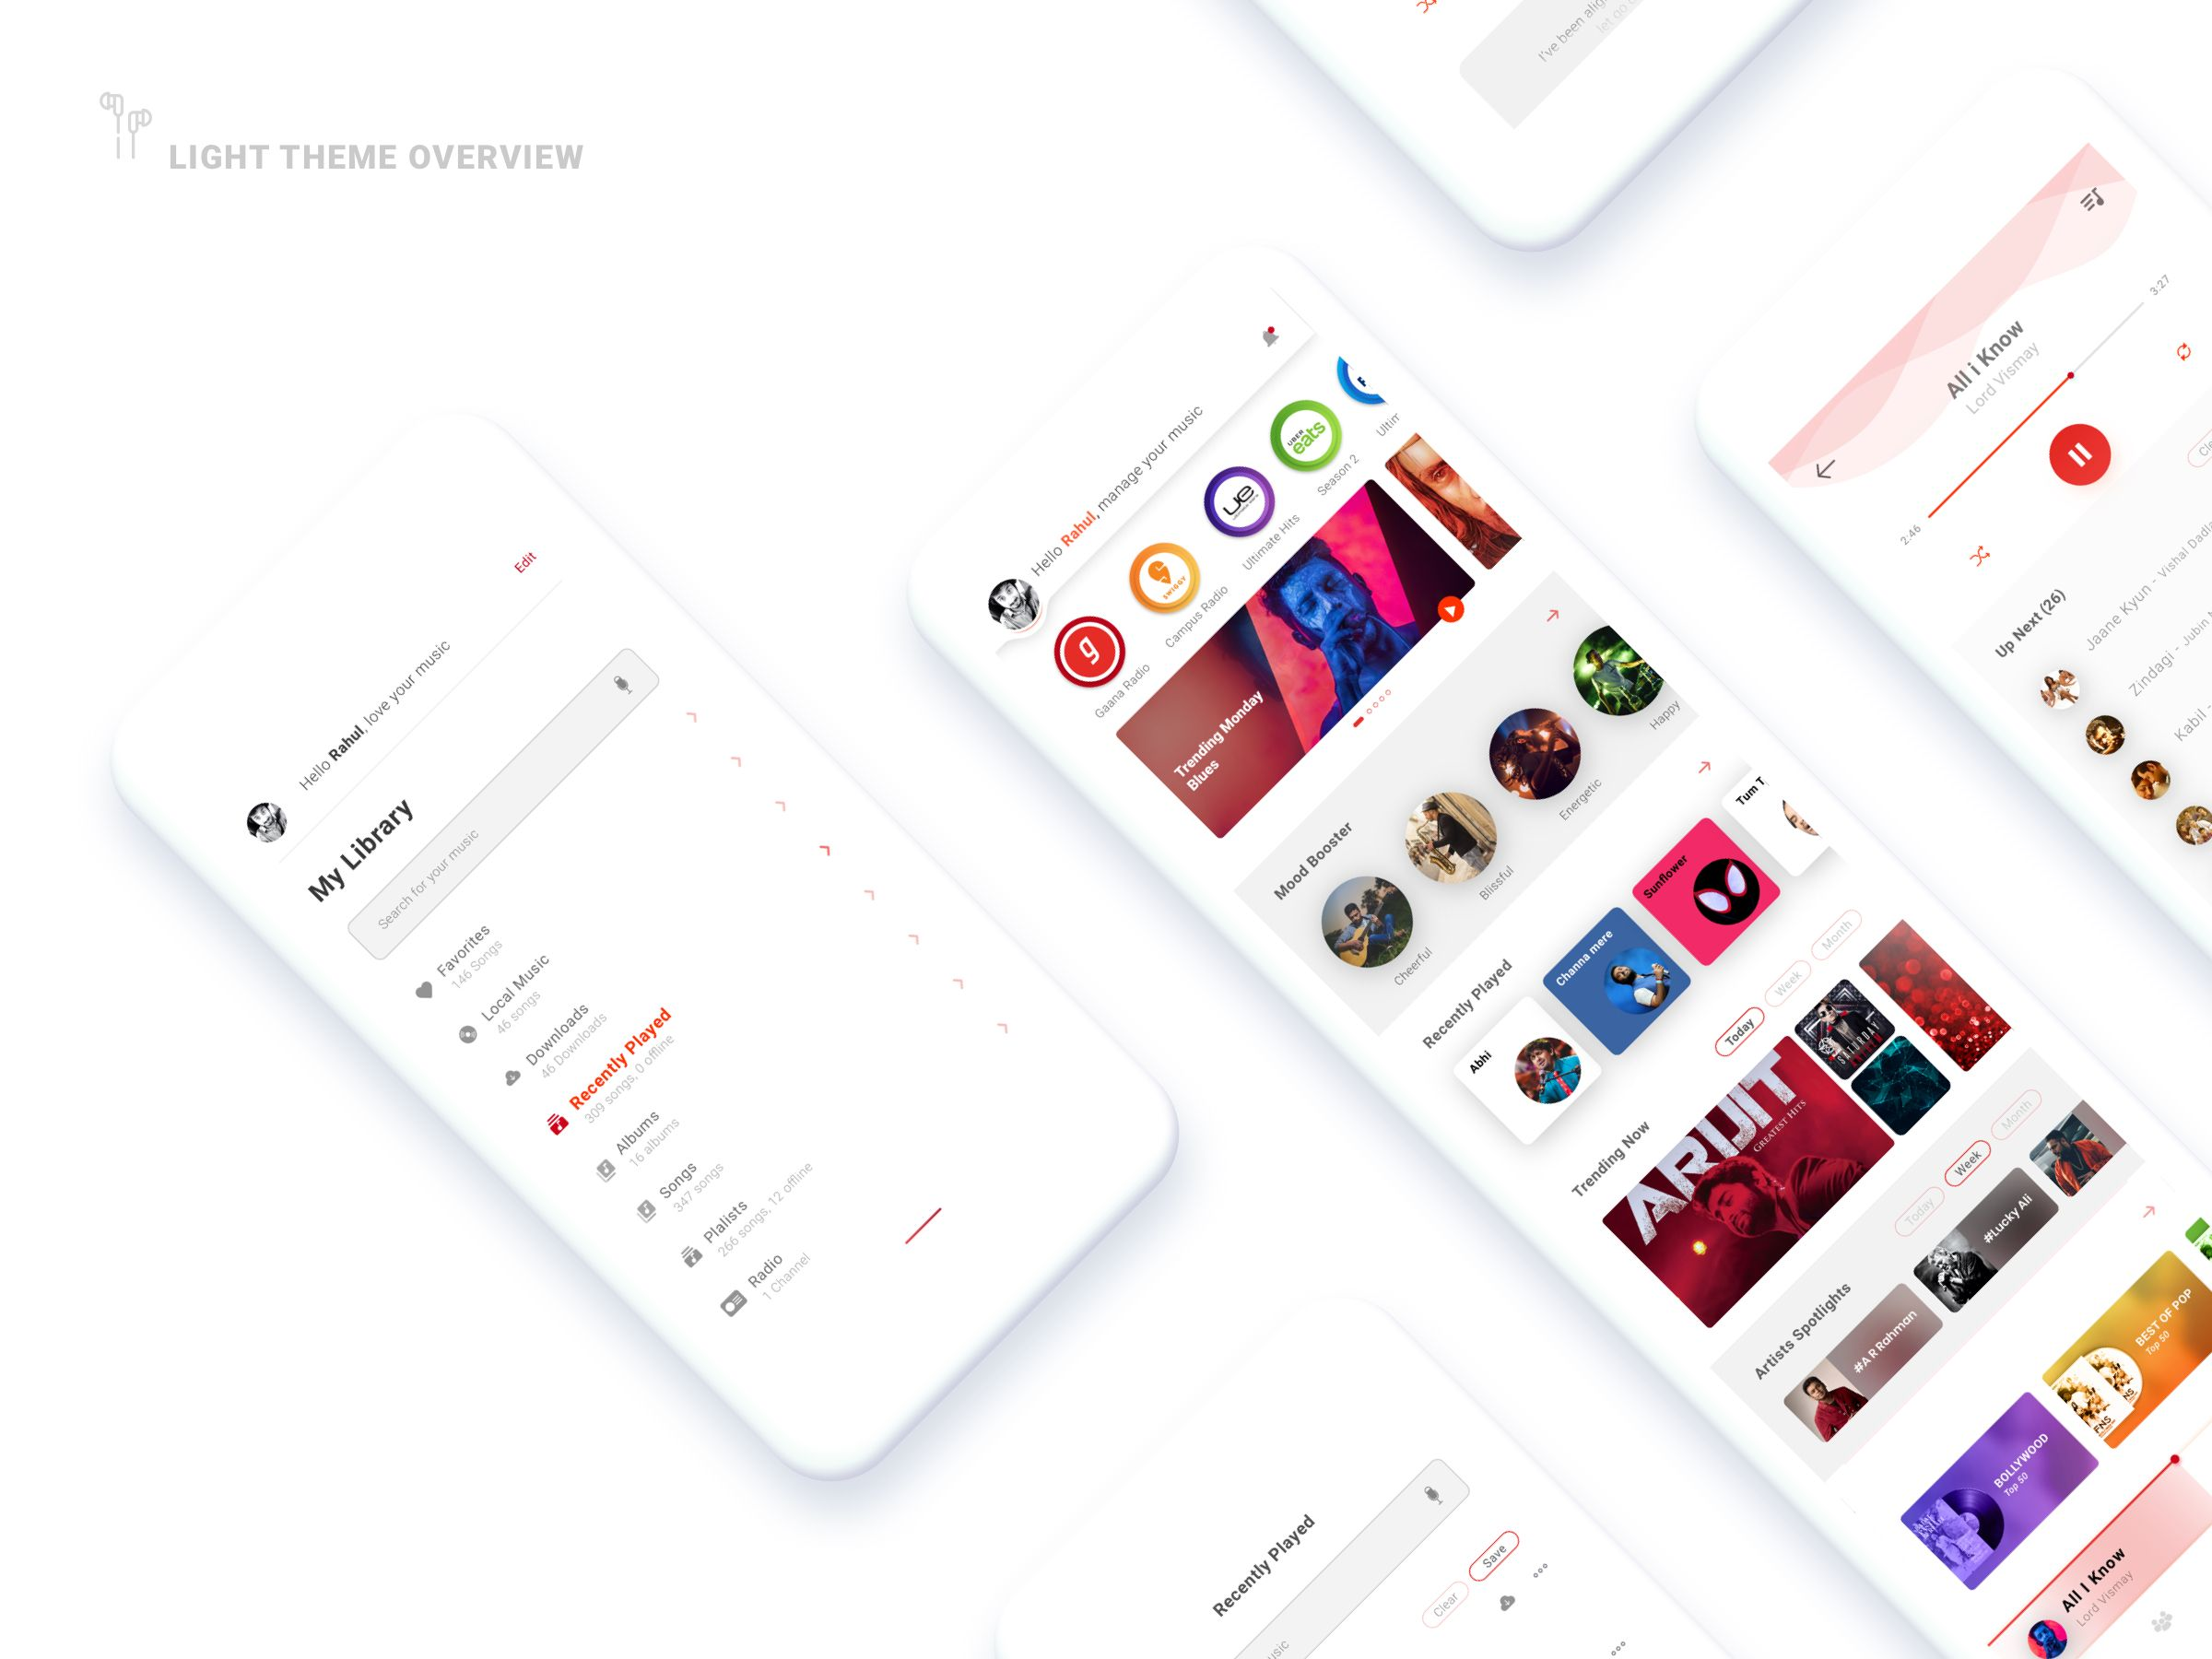 Music App Home Screen By Chand Routh App Home Screen App Home Music App